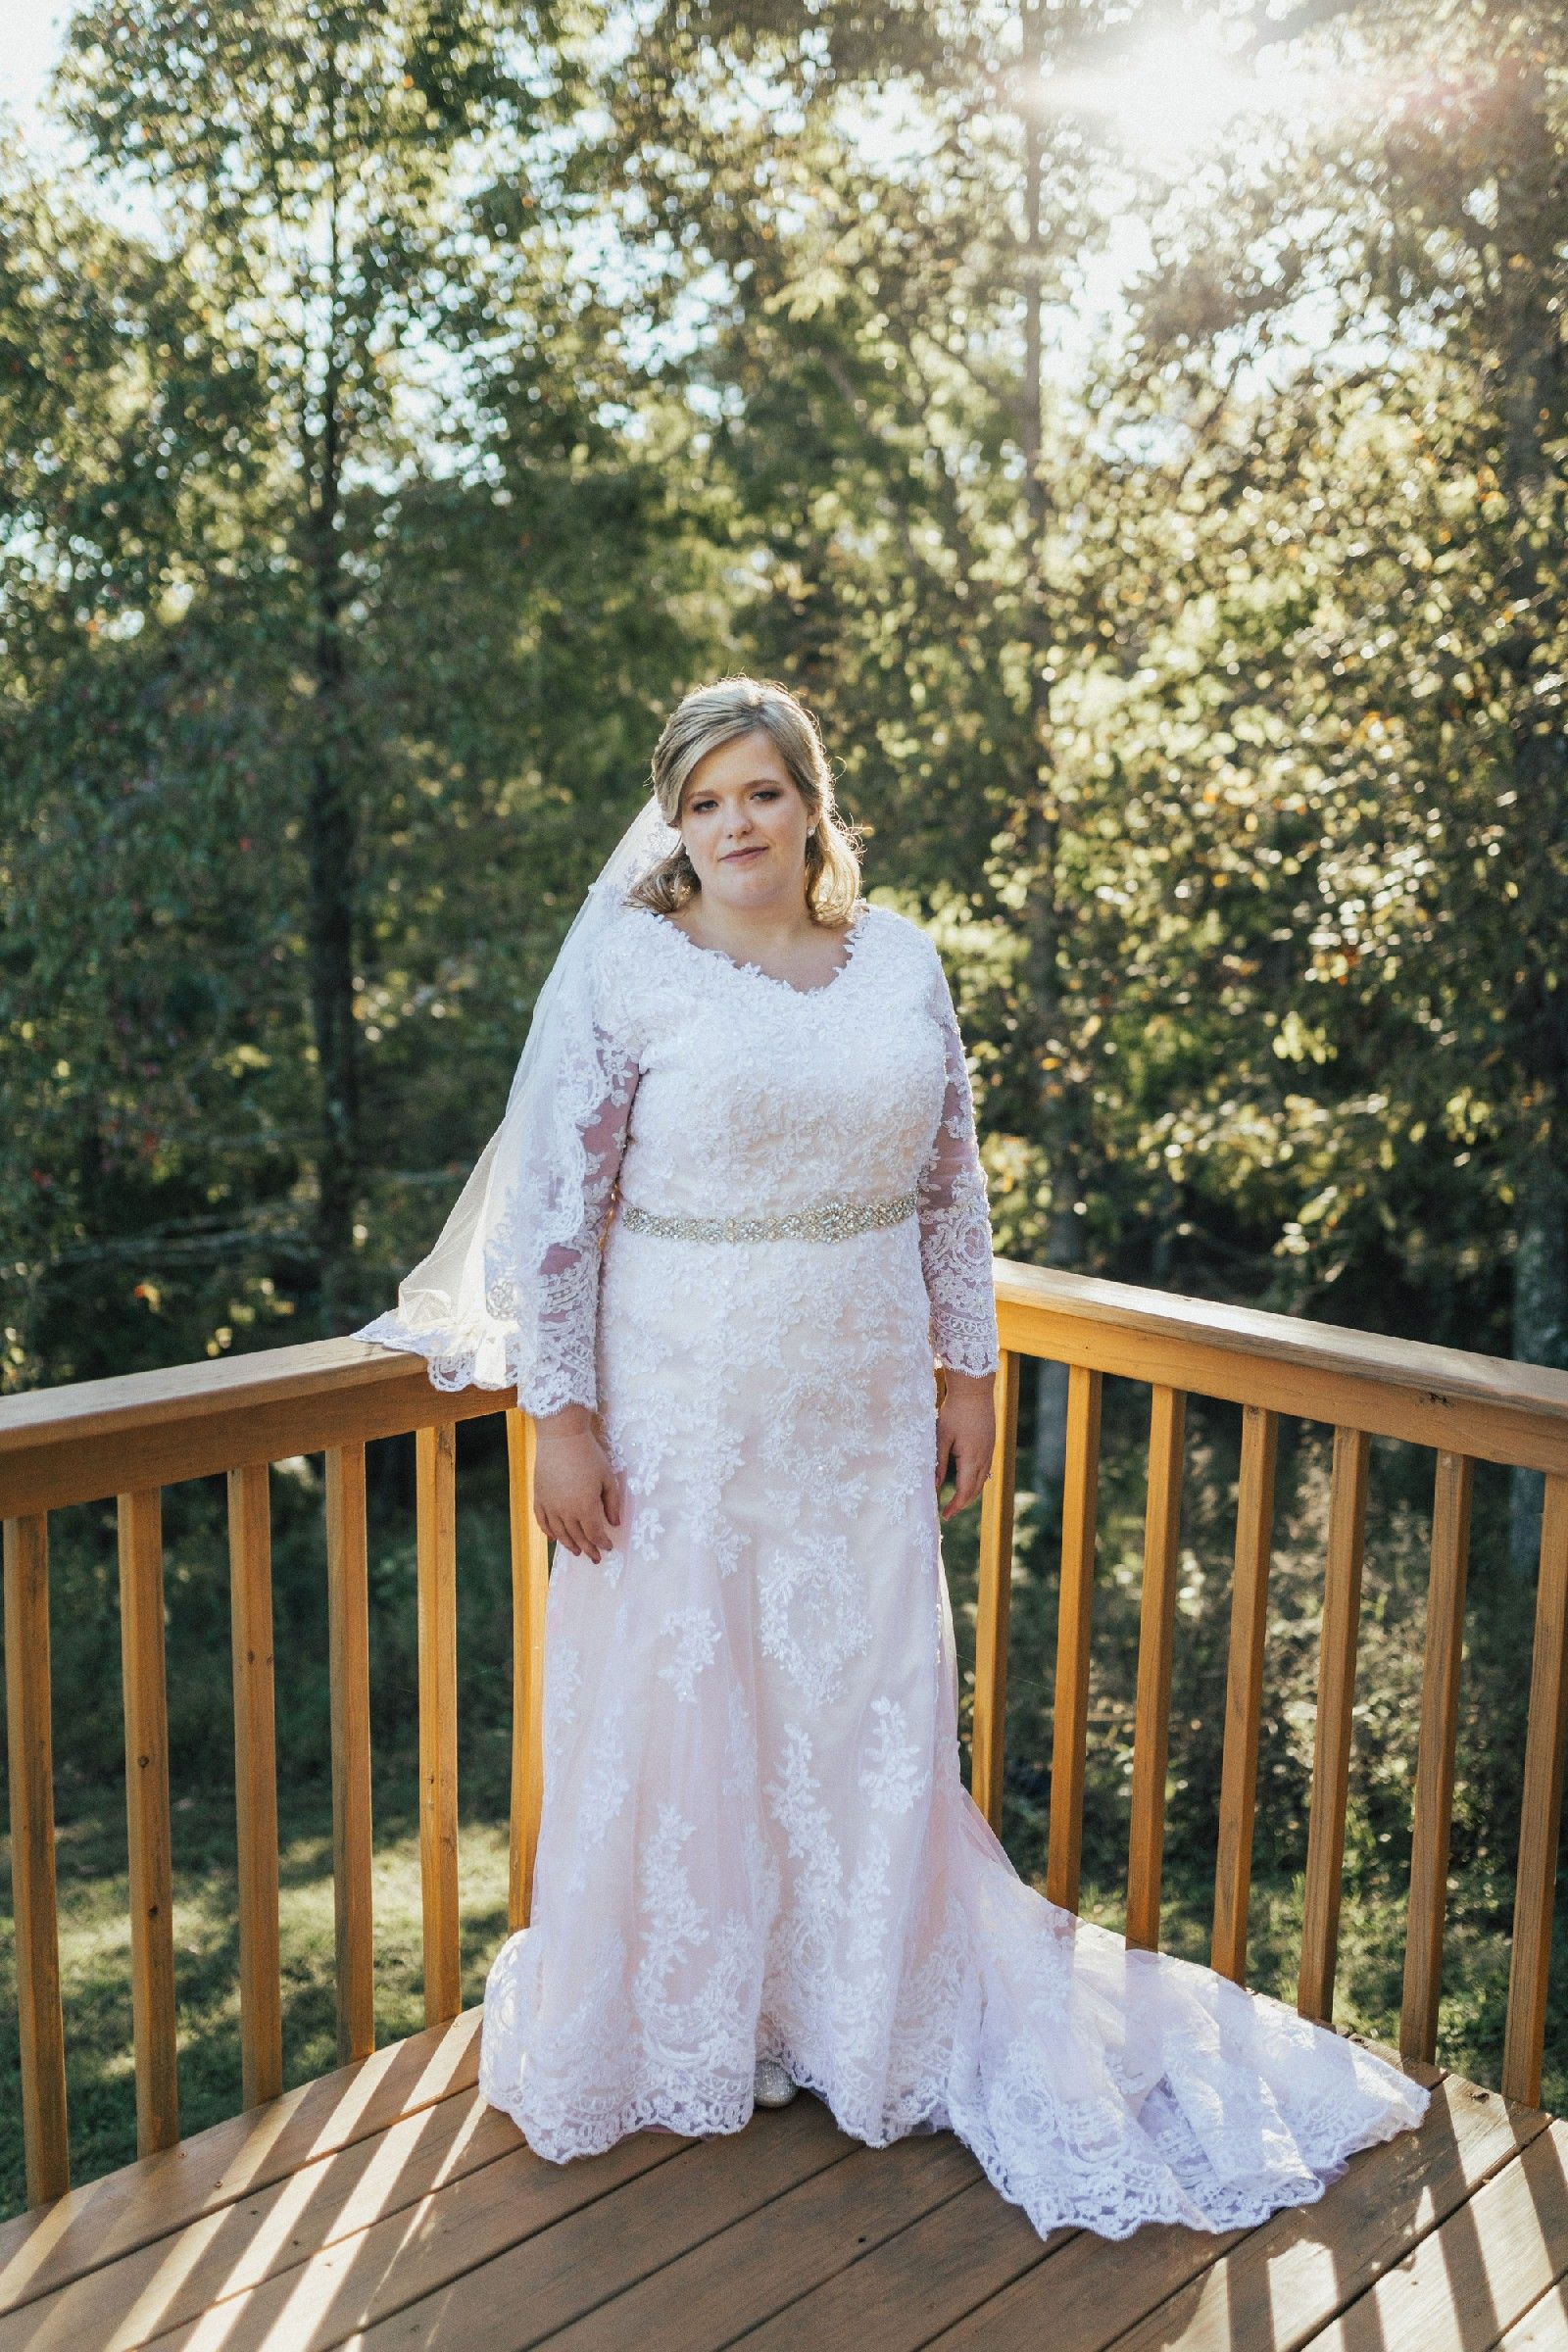 Wedding Dress With Sleeves Close To The Dress I Ha E Been Dreaming Of But Not Quite Wedding Dresses Sell My Wedding Dress Summer Bridesmaid Dresses